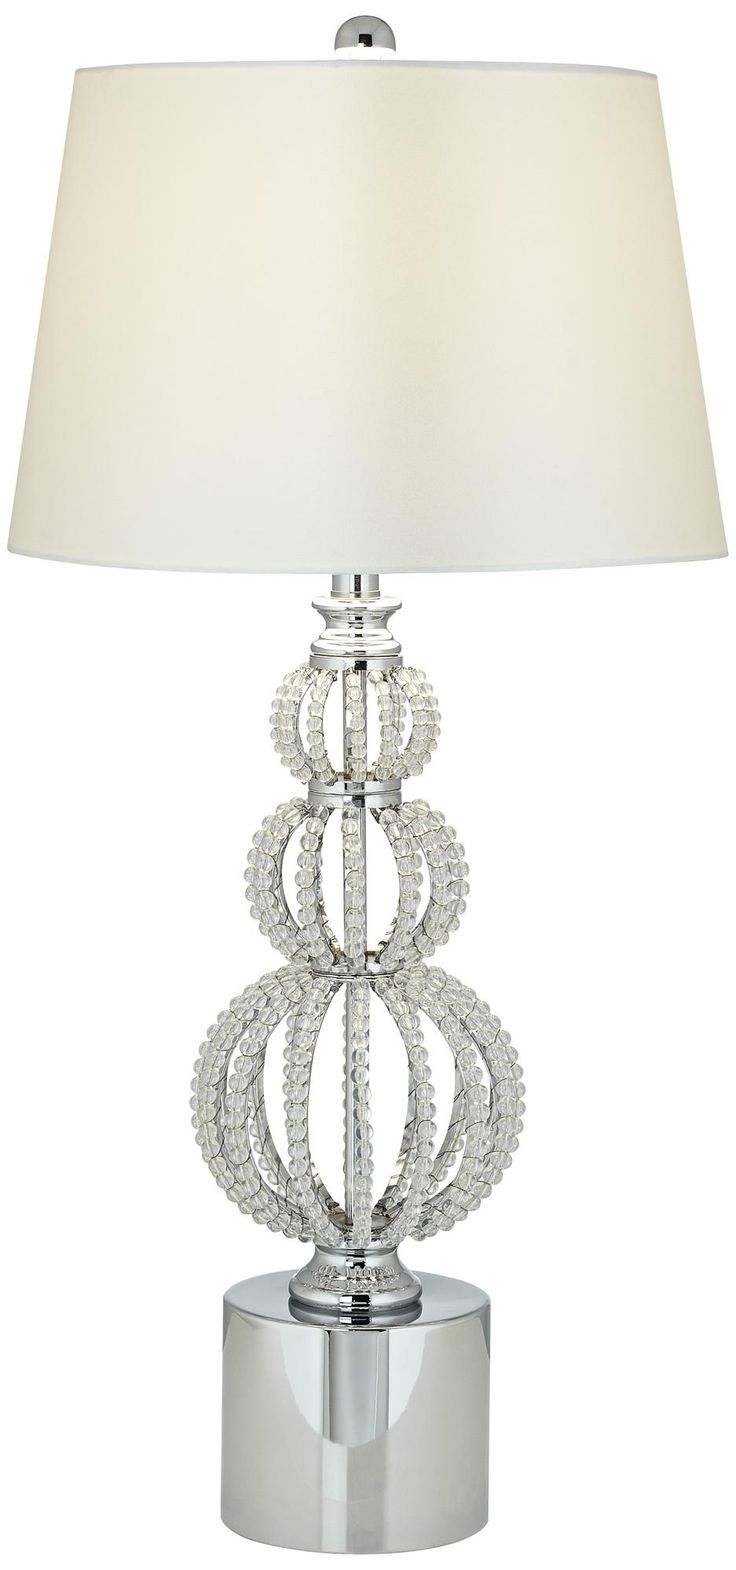 Beaded Stacked Spheres Chrome With White Crystal Table Lamp